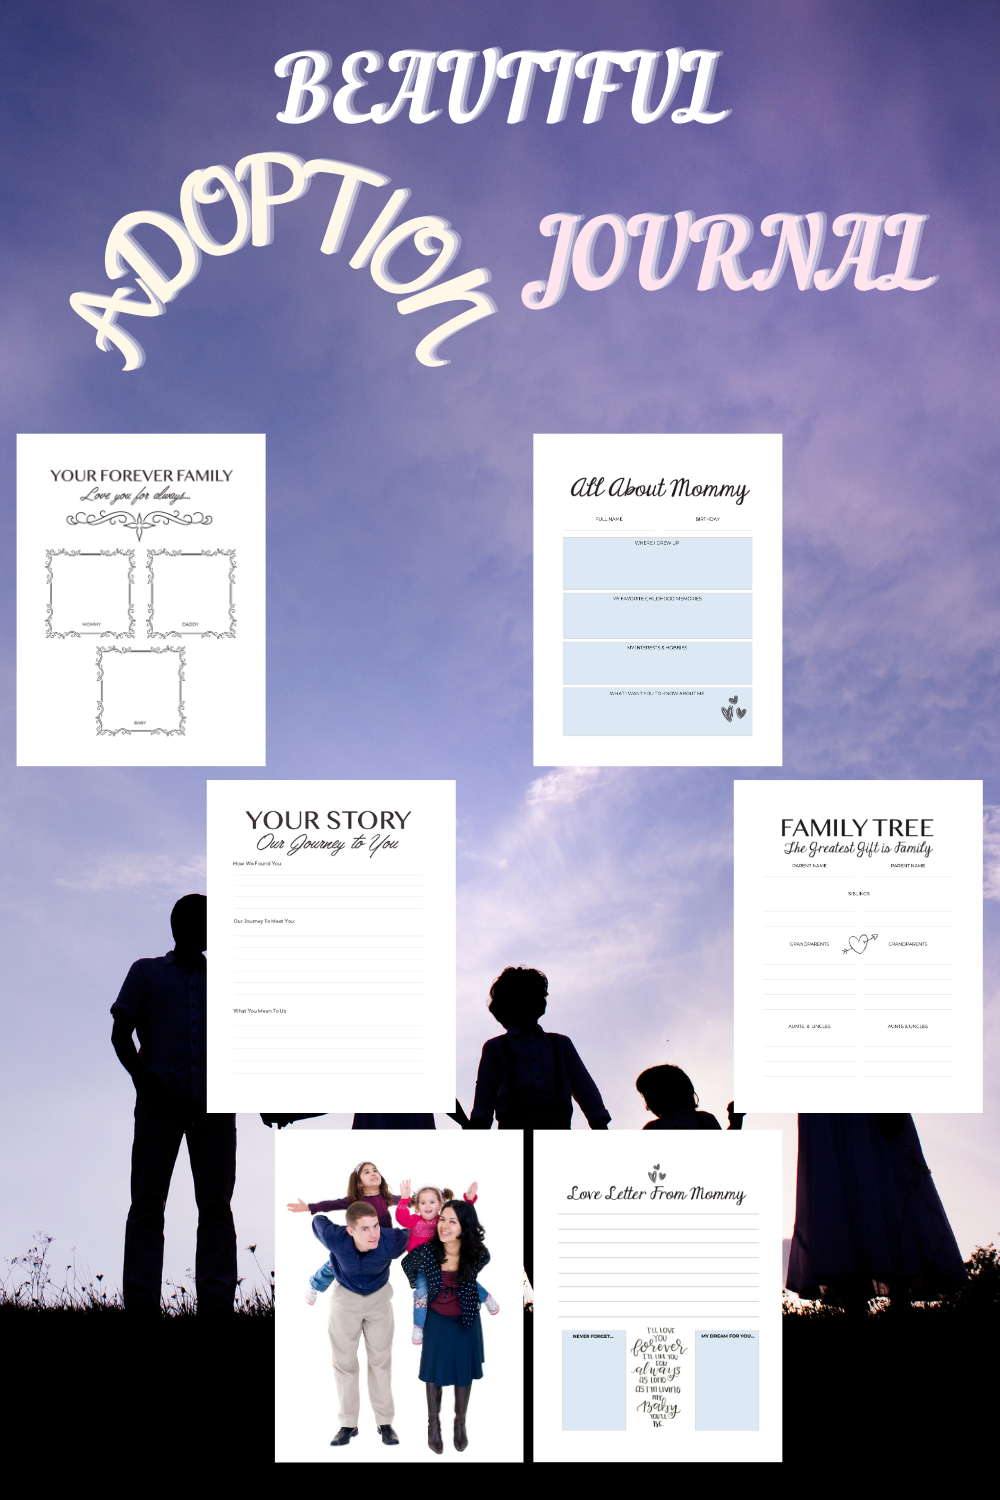 Family Adoption Journal For You